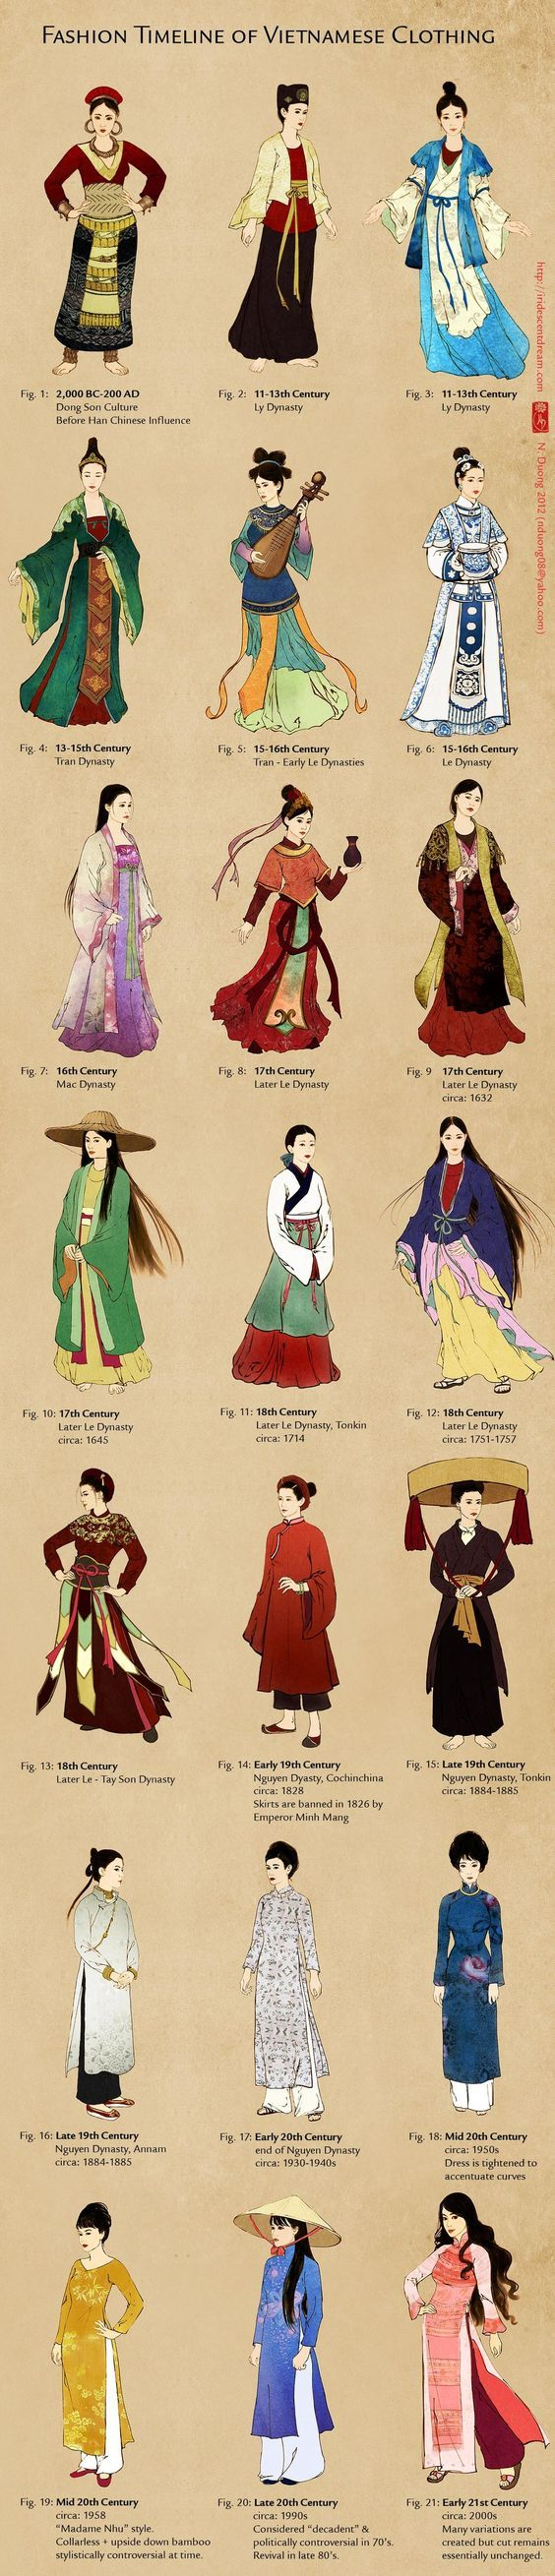 vintage ethnic fashion ancient South Asian styles through history - China, Japan, Vietnam: